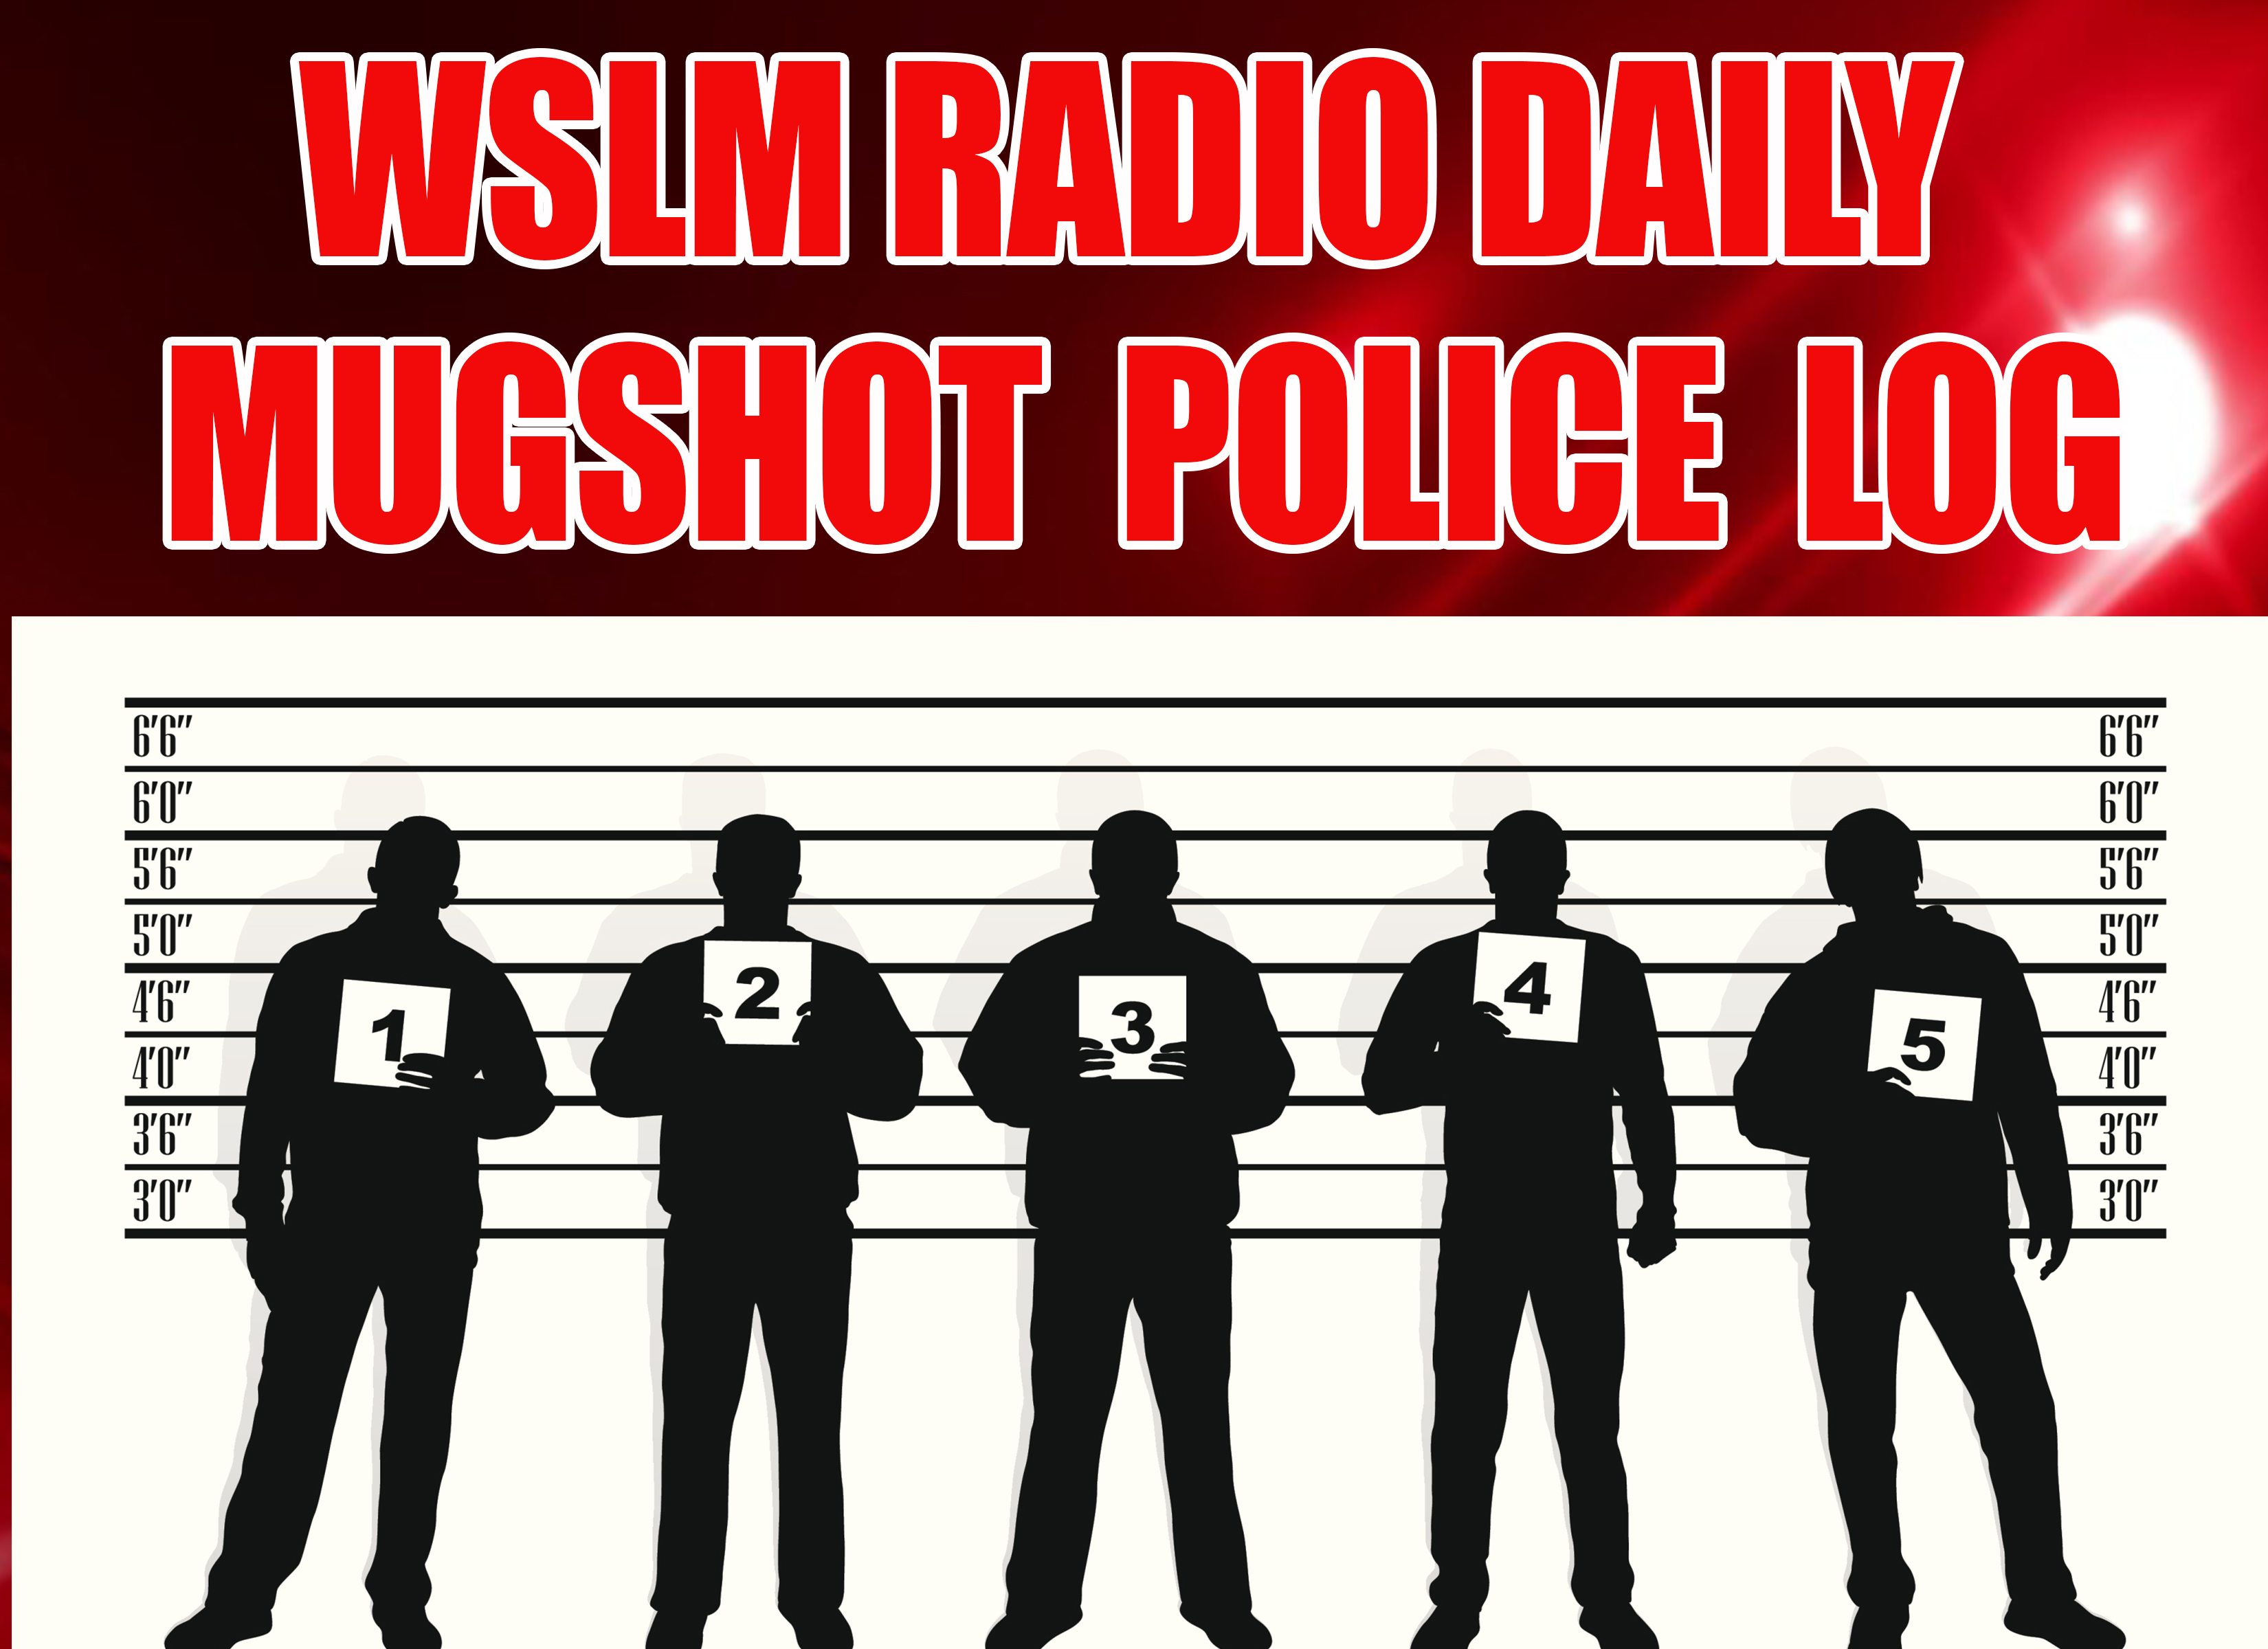 Jackson County Inmate Roster – 3-12-18 | WSLM RADIO